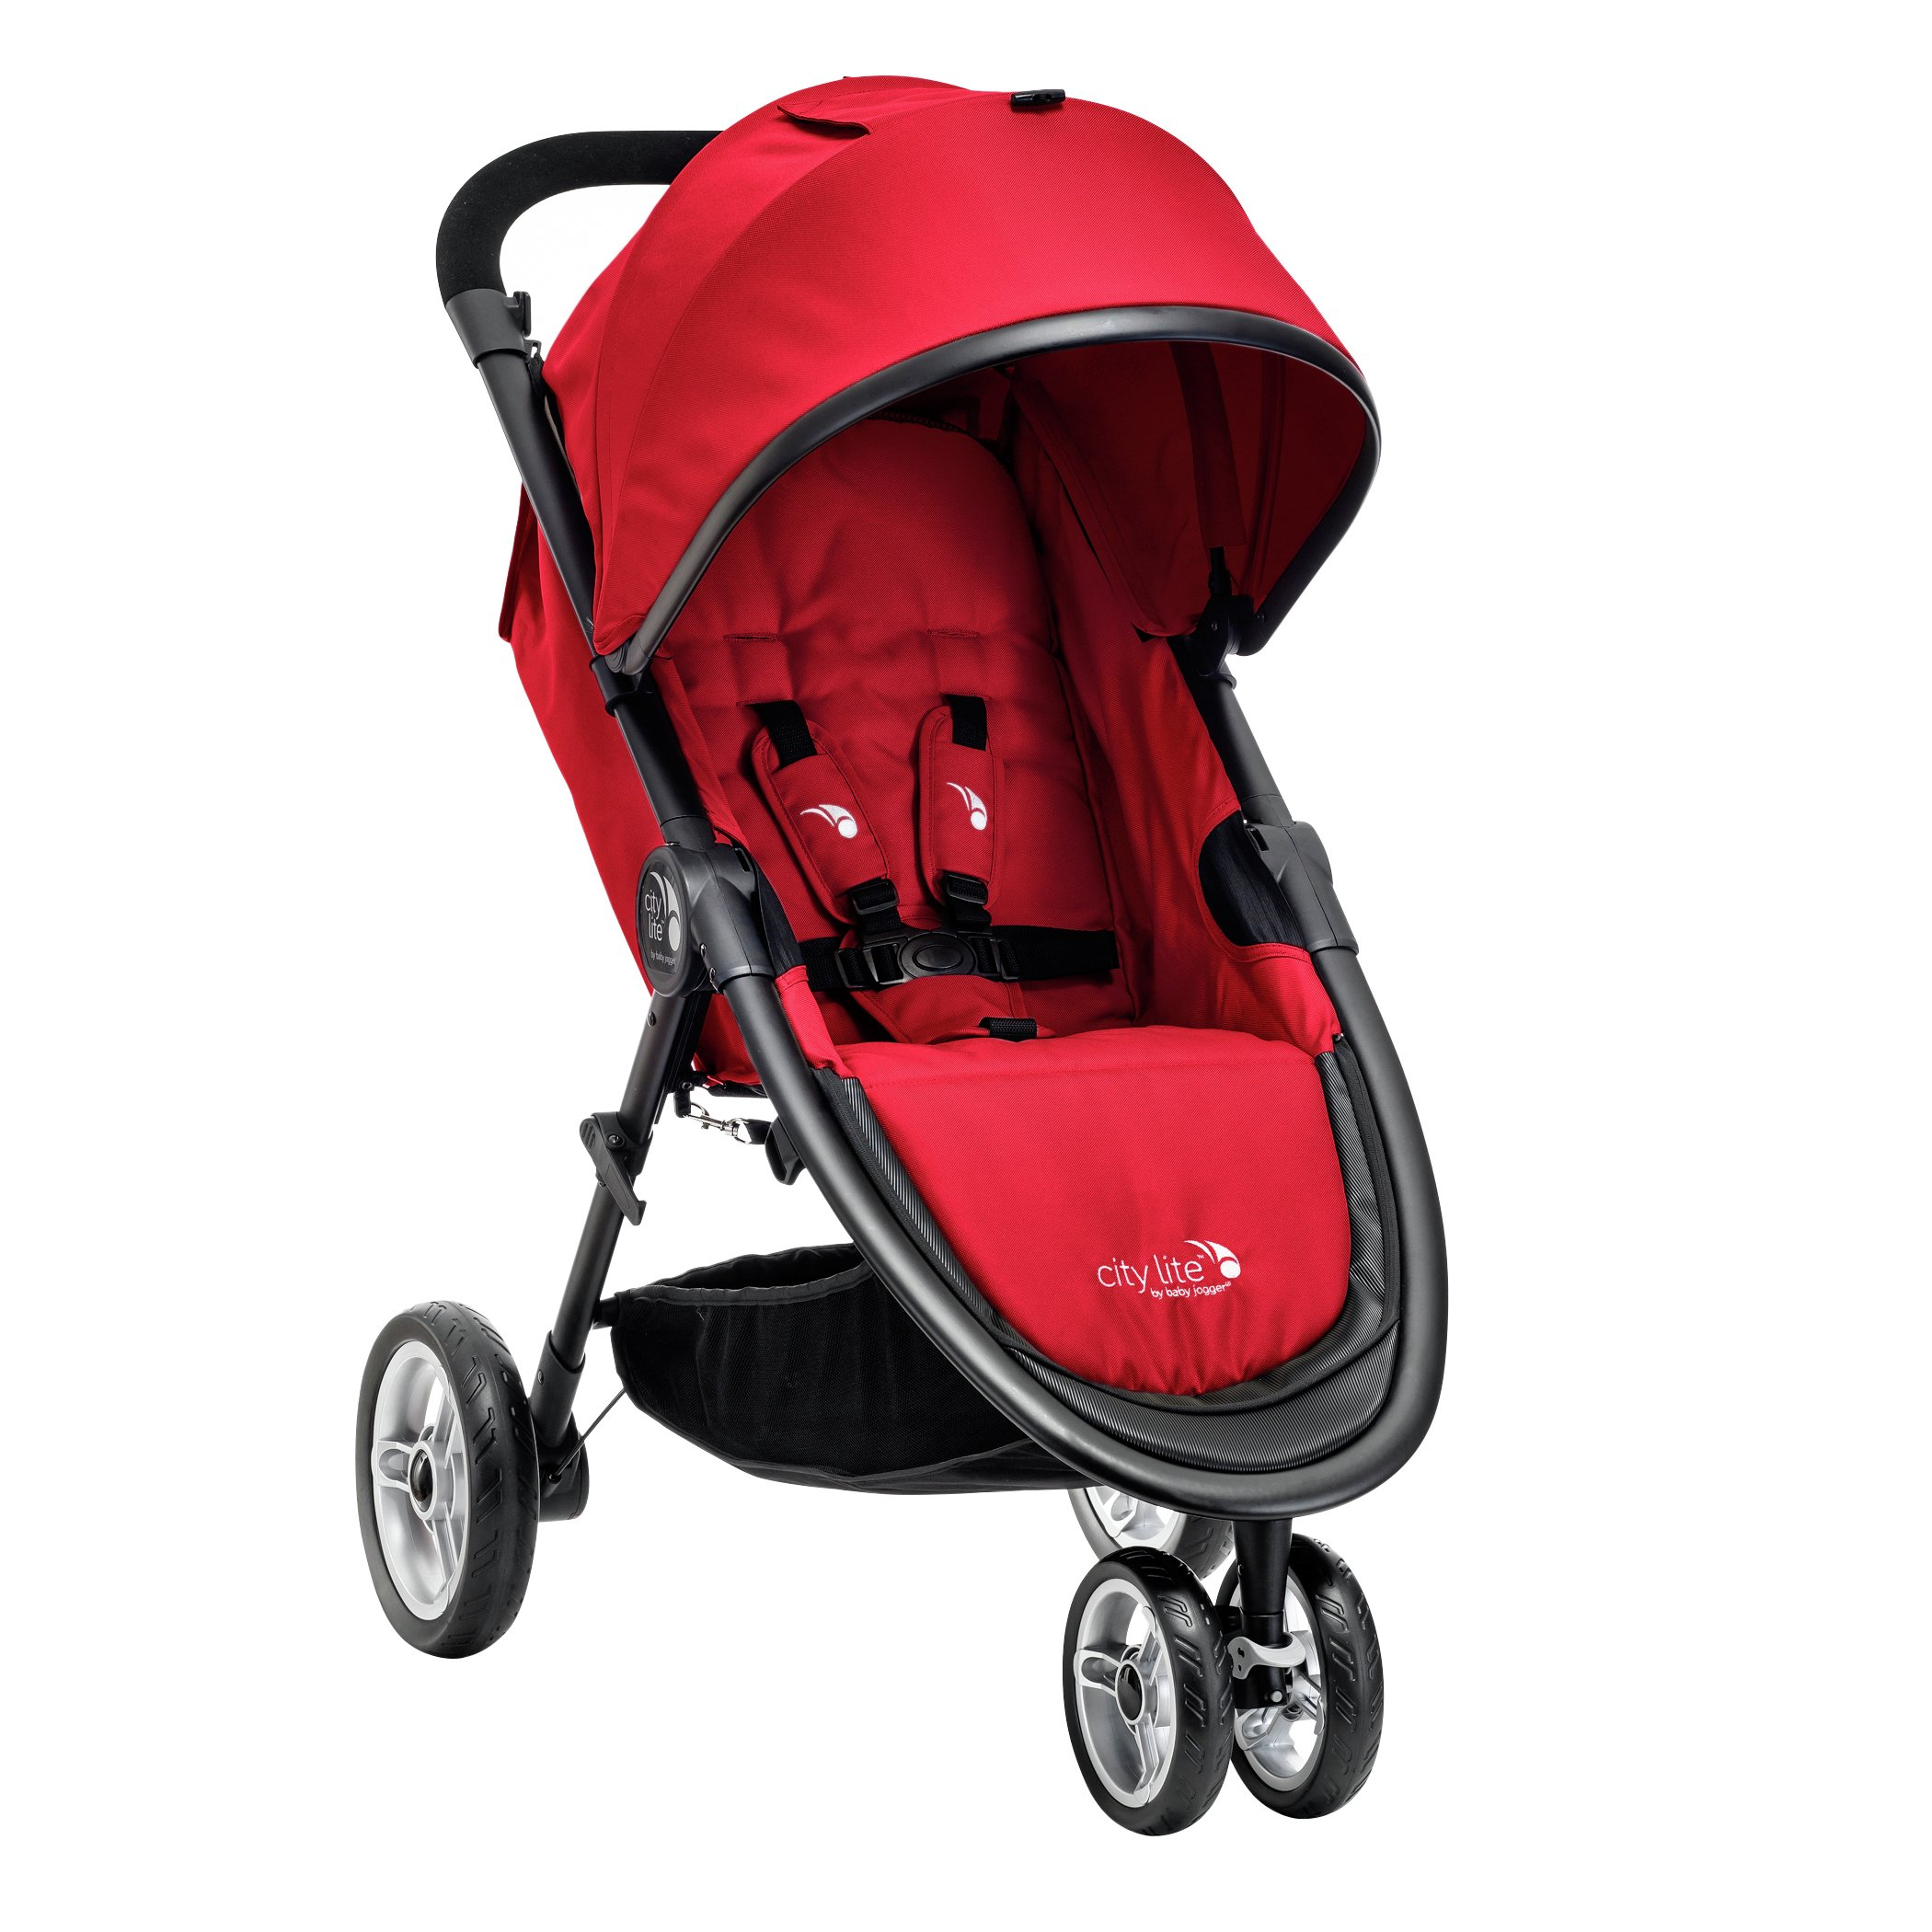 Image of Baby Jogger? City Lite? Single - Stroller - Red